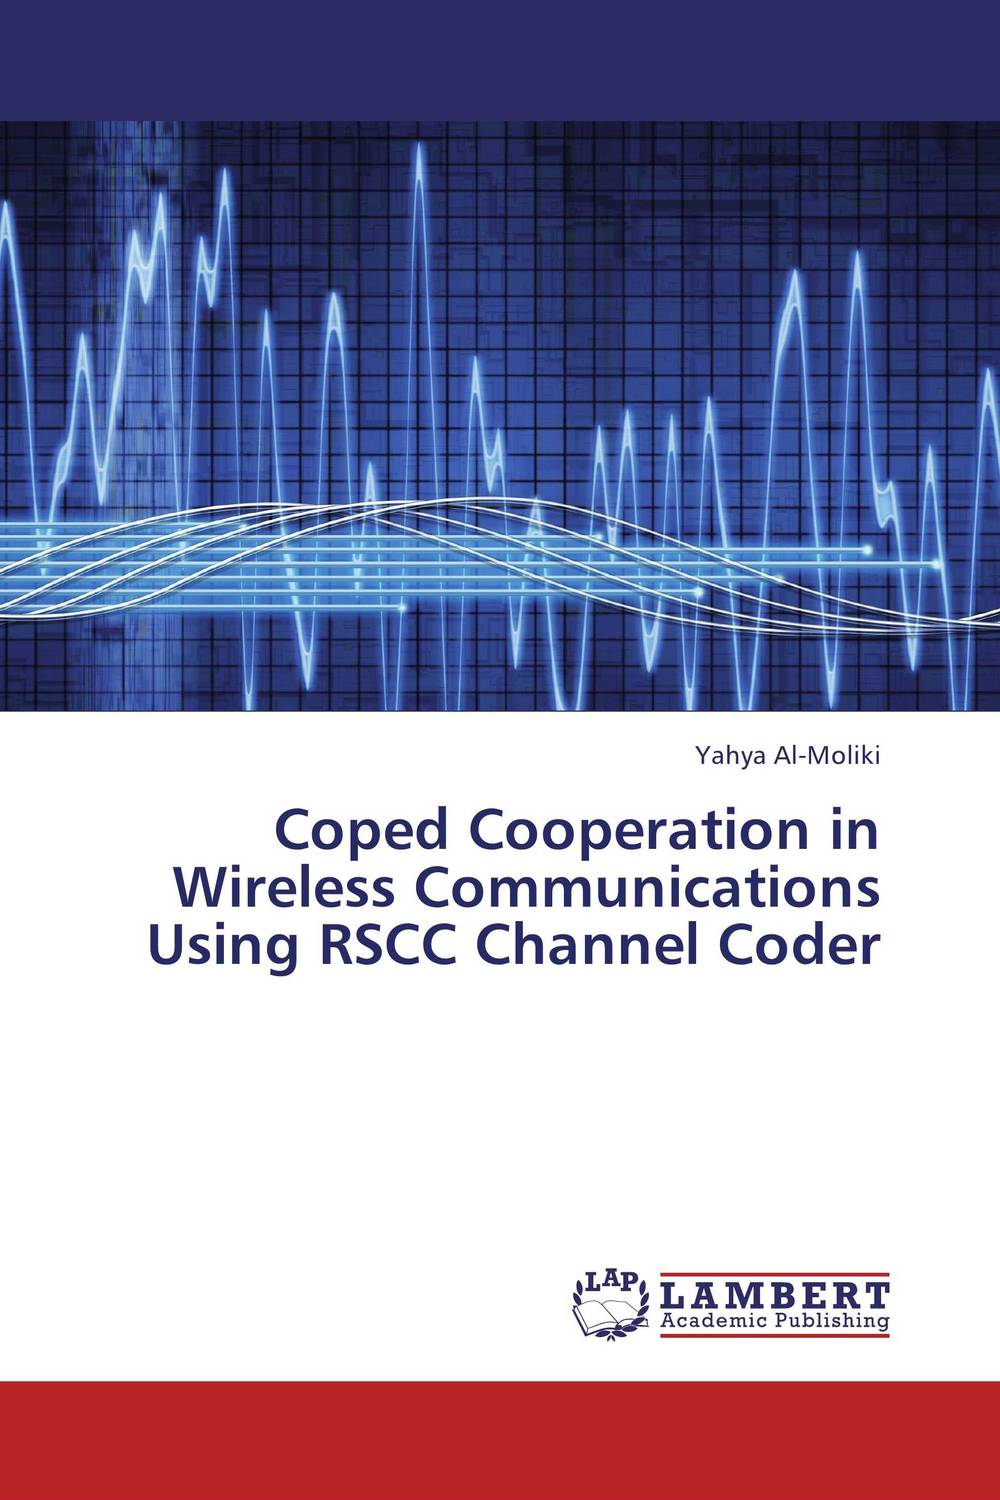 Coded Cooperation in Wireless Communications Using RSCC Channel Coder ipega pg 9077 bluetooth wireless gamepad